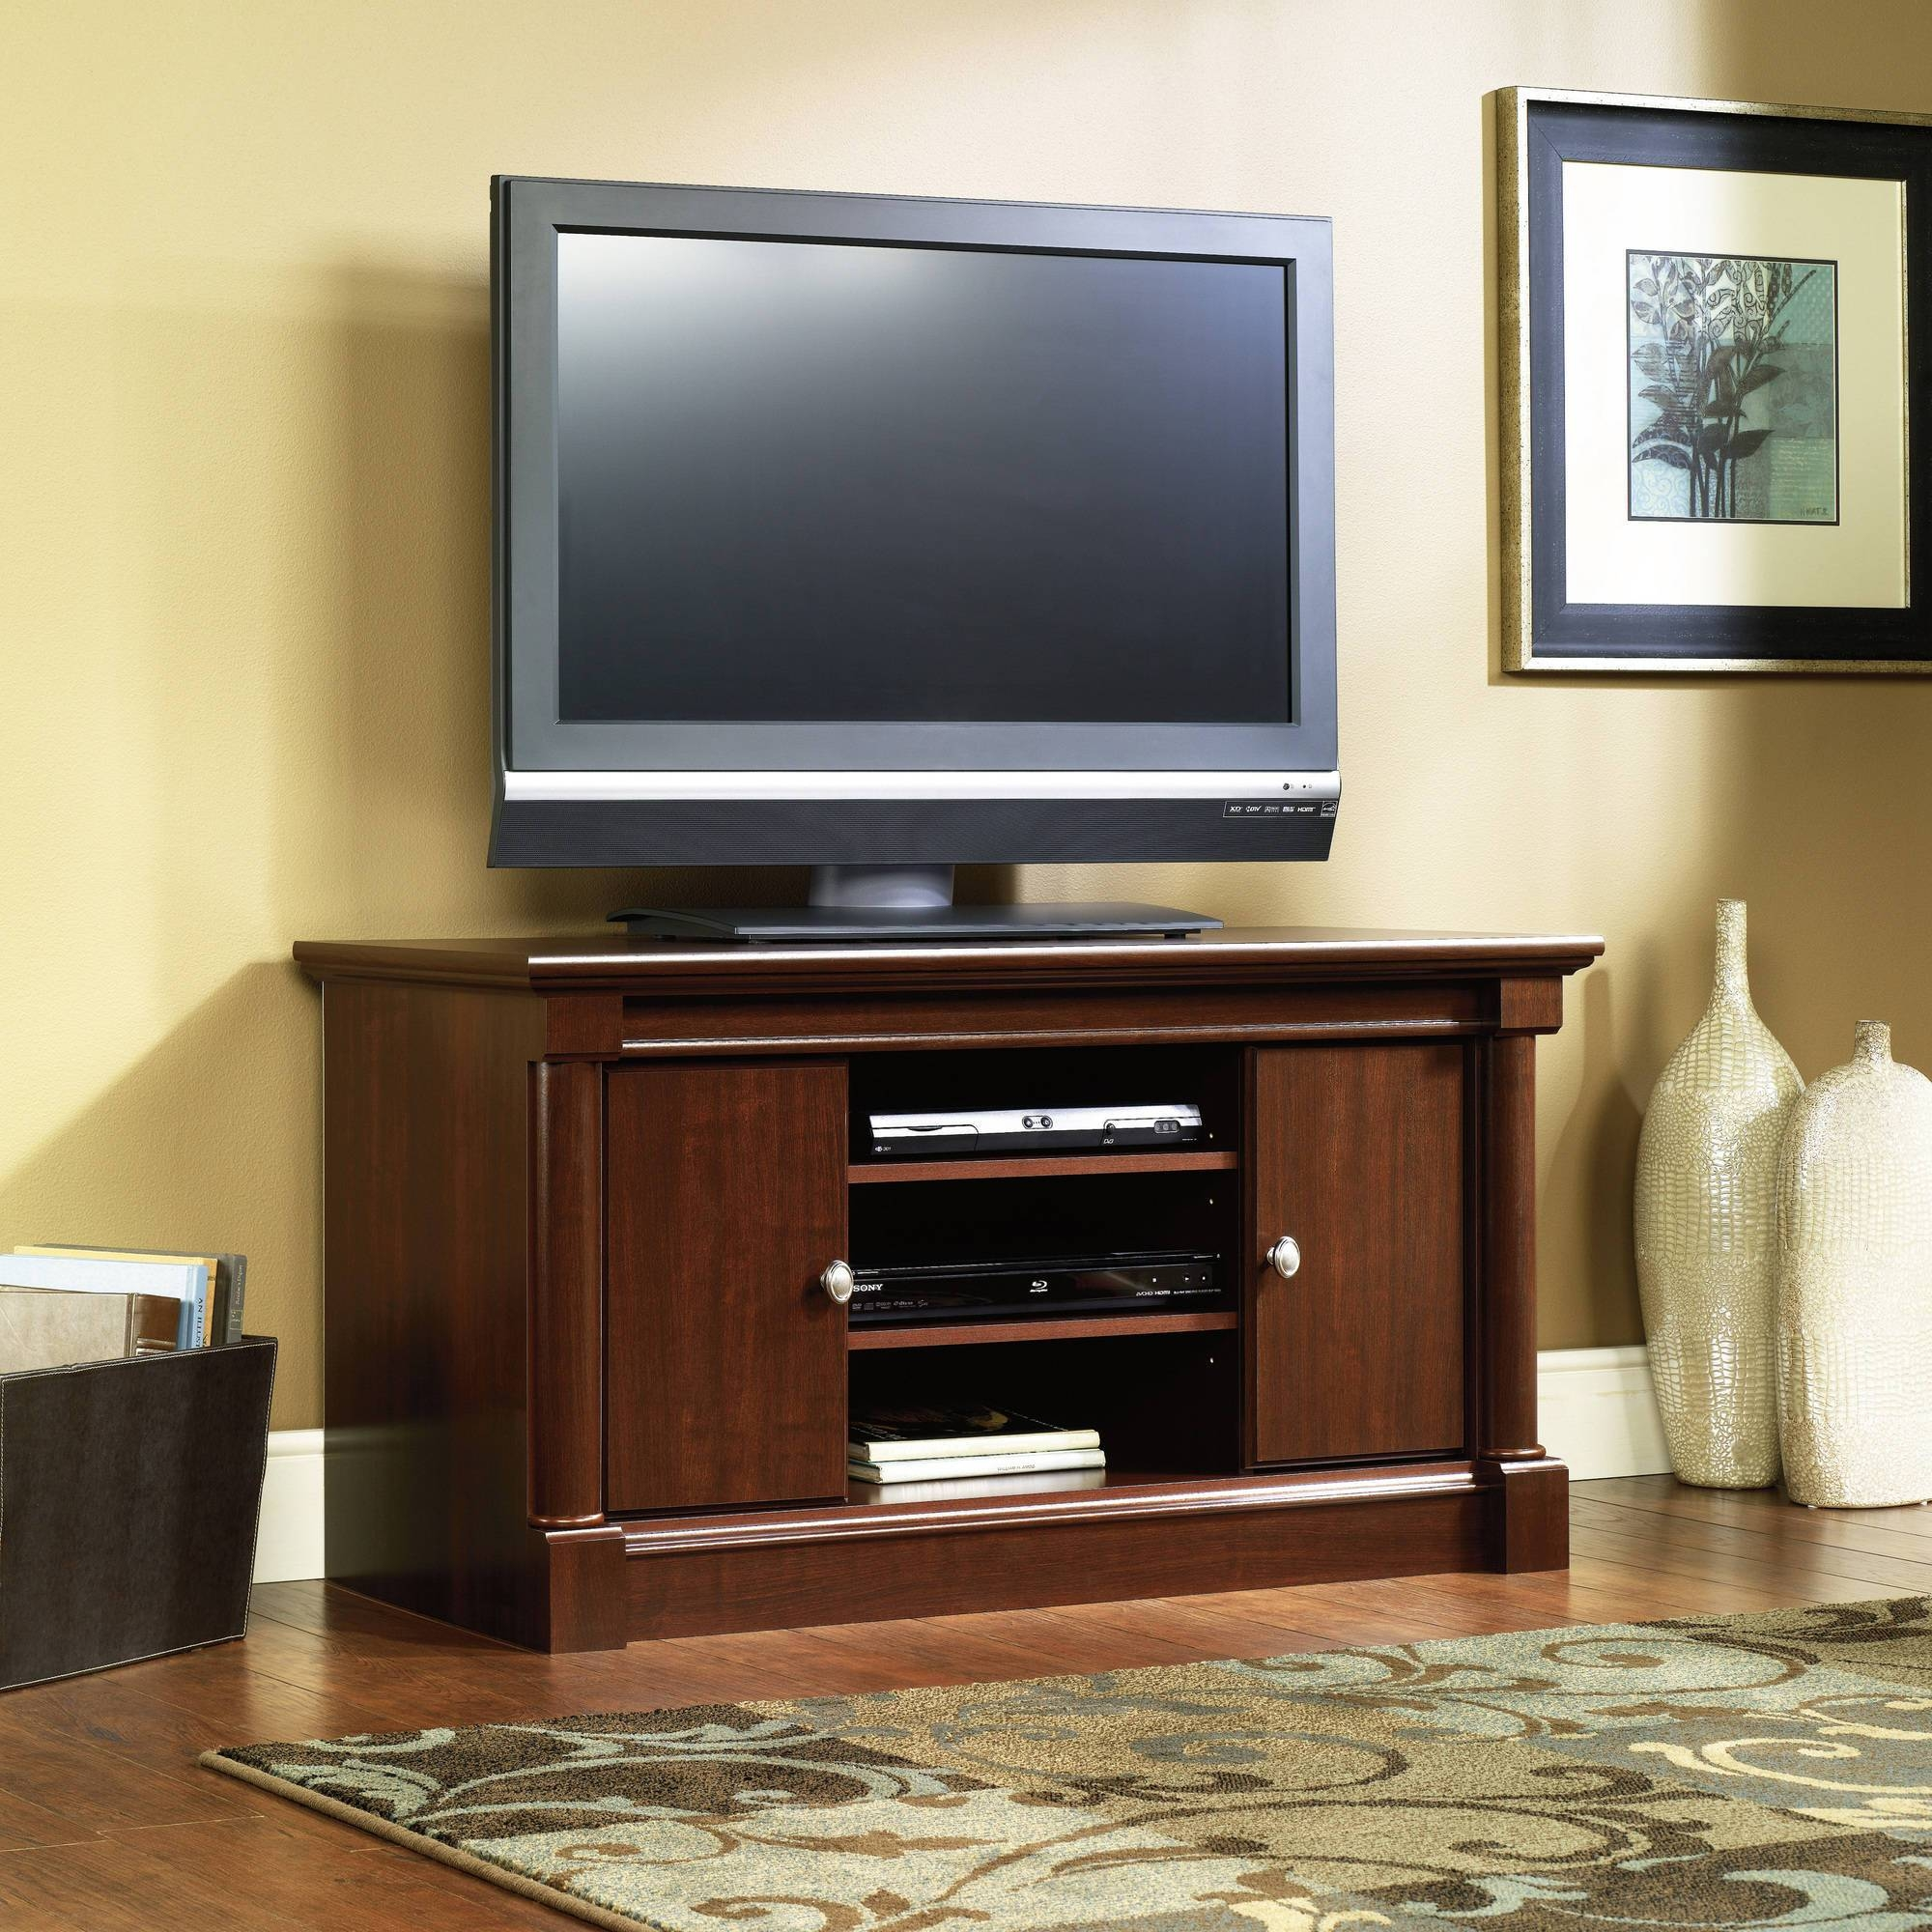 Sauder Palladia Mid Size Tv Stand In Cherry - Walmart within Como Tv Stands (Image 11 of 15)